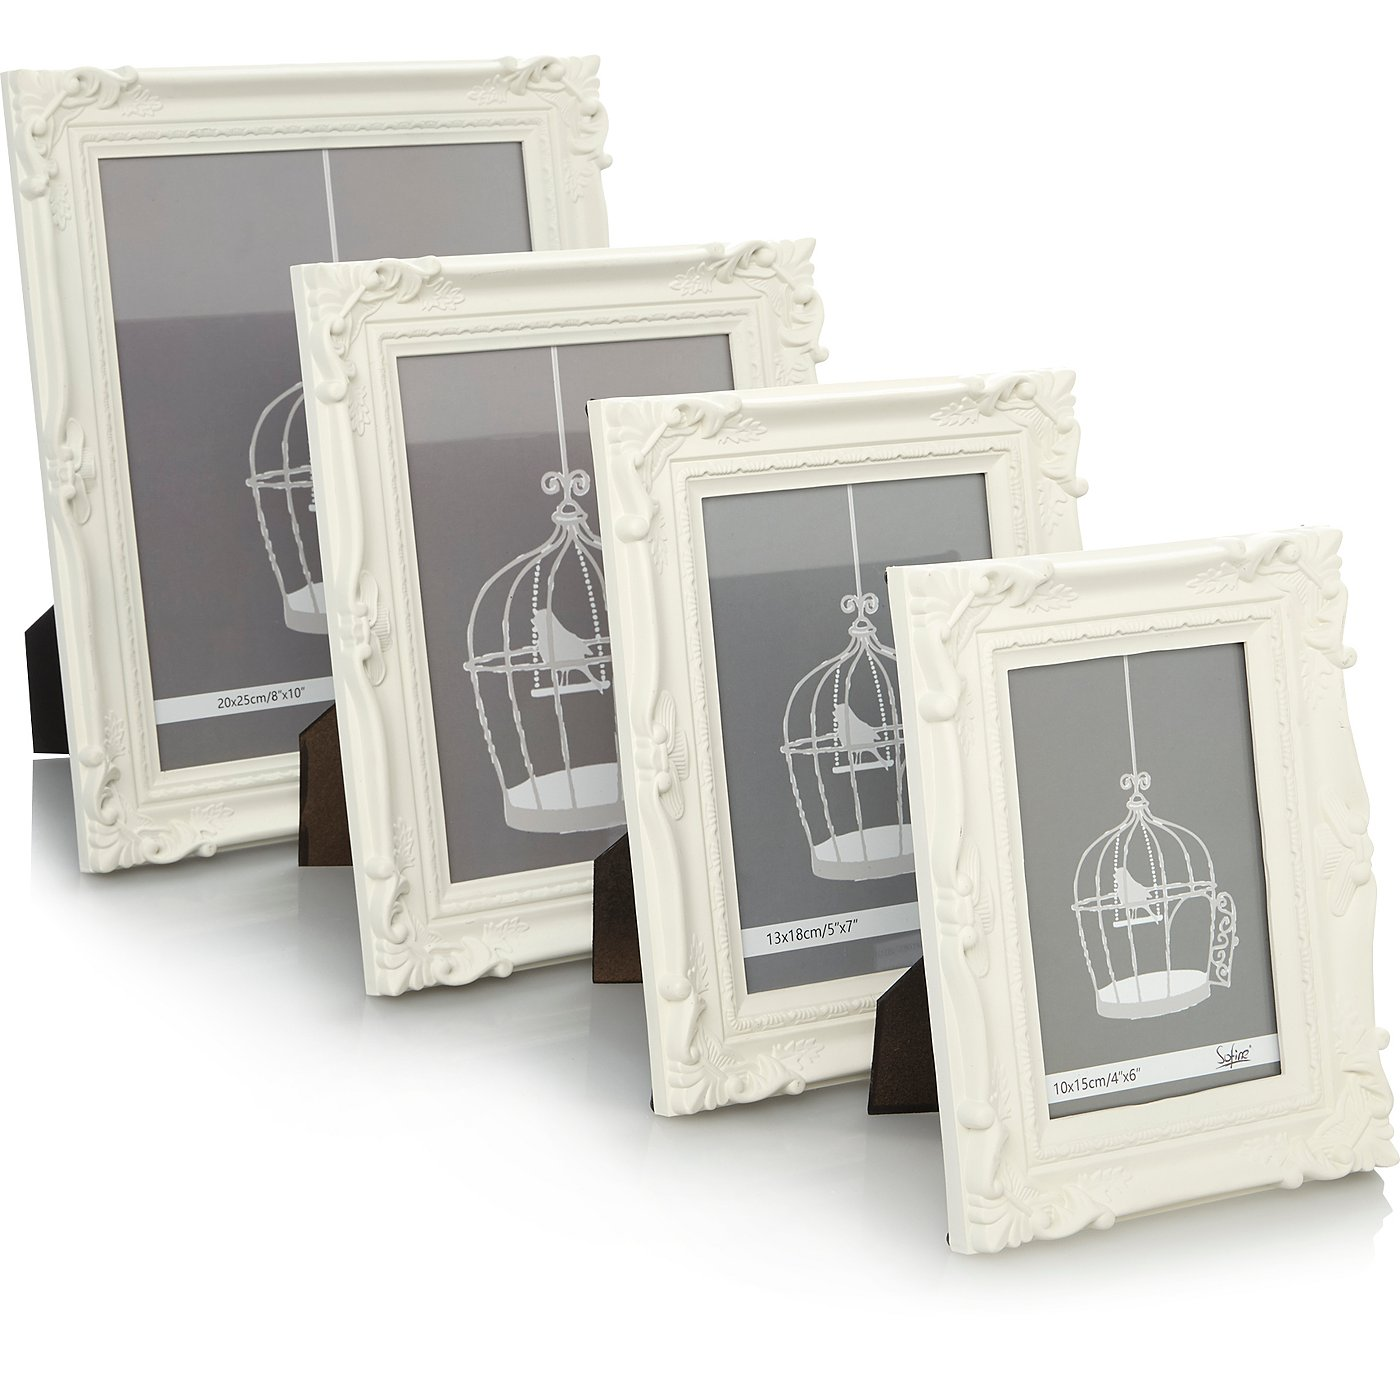 Asda Glass Photo Frames